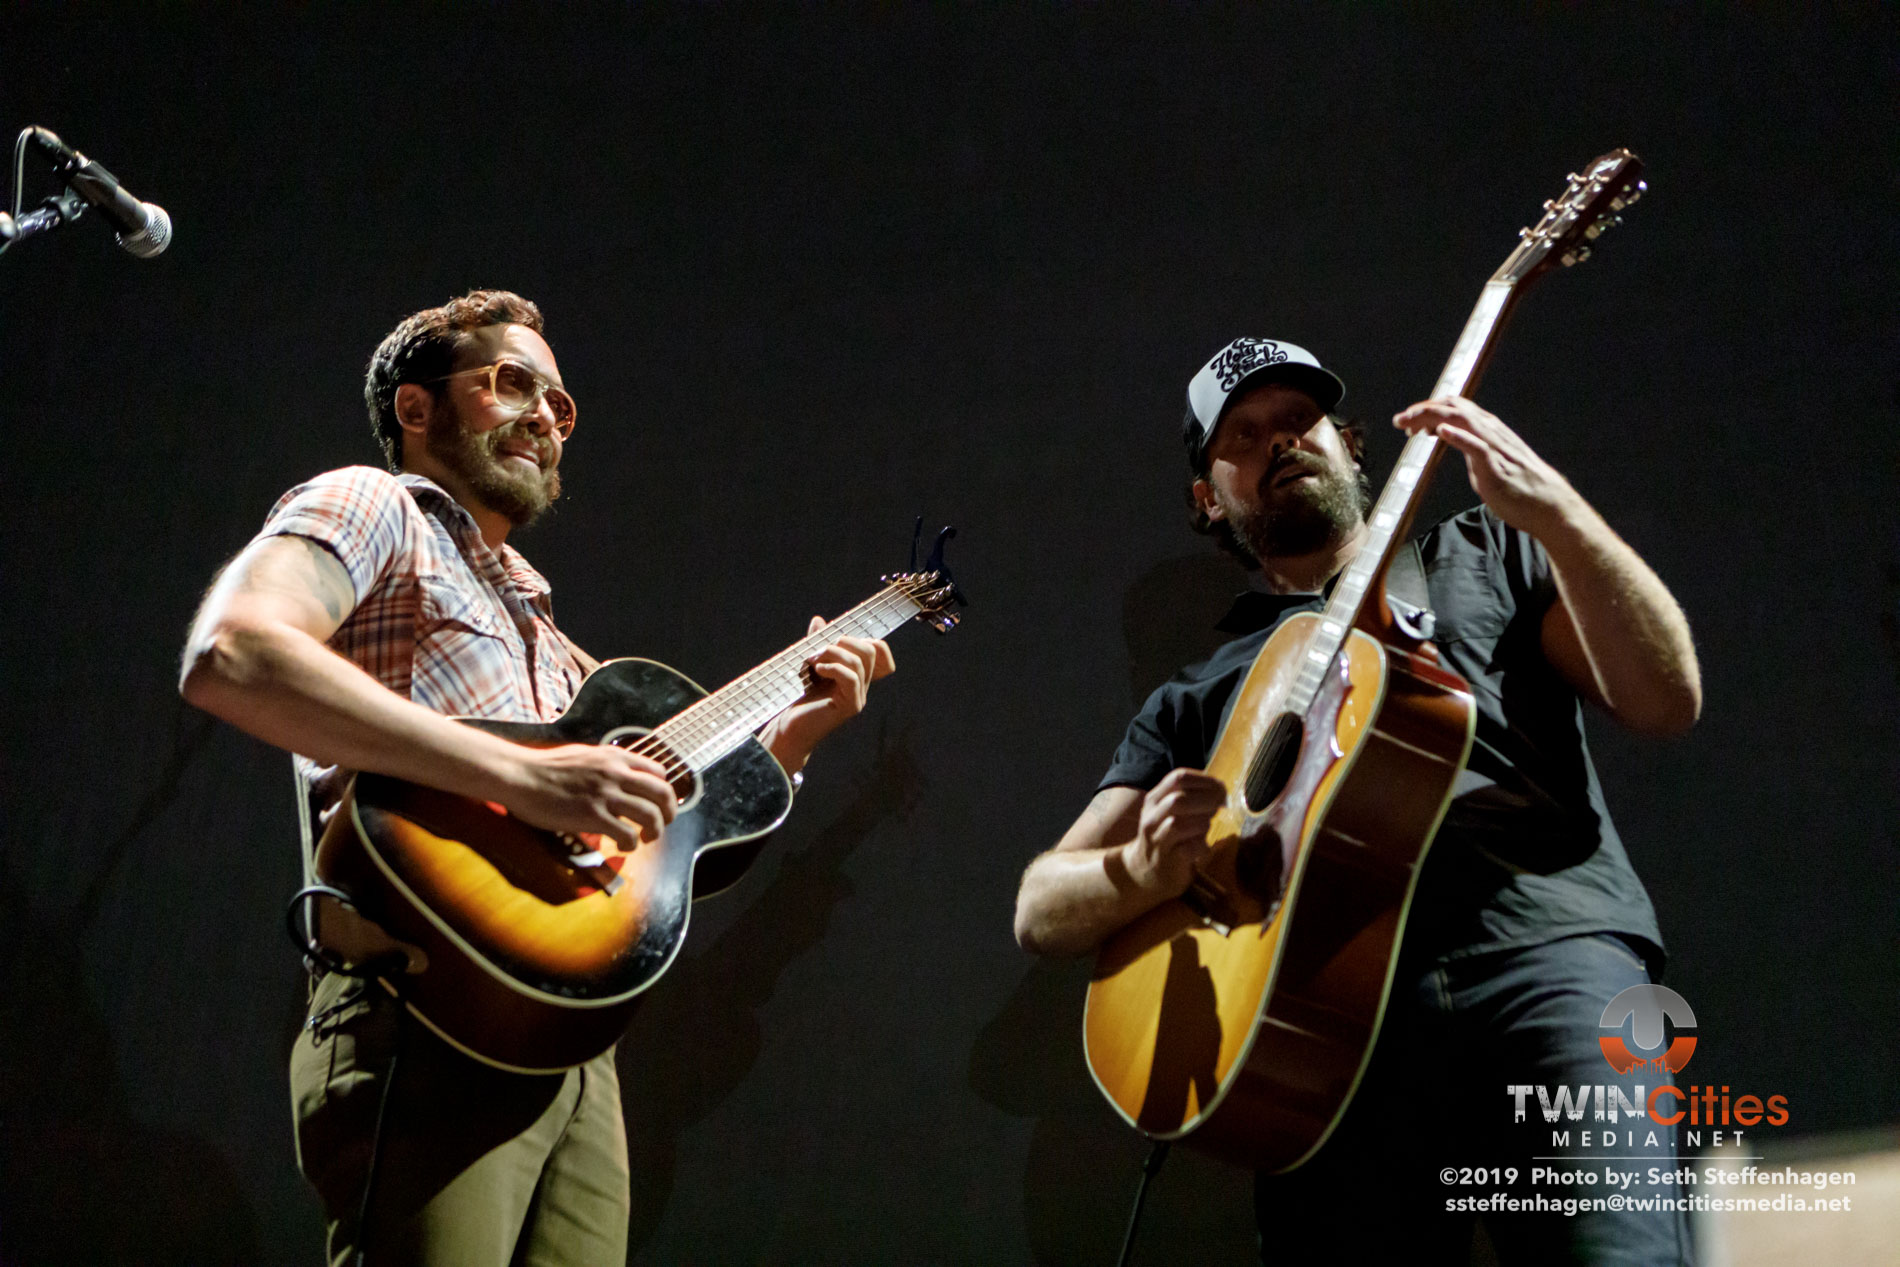 July 30, 2019 - Saint Paul, Minnesota, United States -  Wynchester live in concert at the Palace Theatre opening for Tenacious D.  (Photo by Seth Steffenhagen/Steffenhagen Photography)